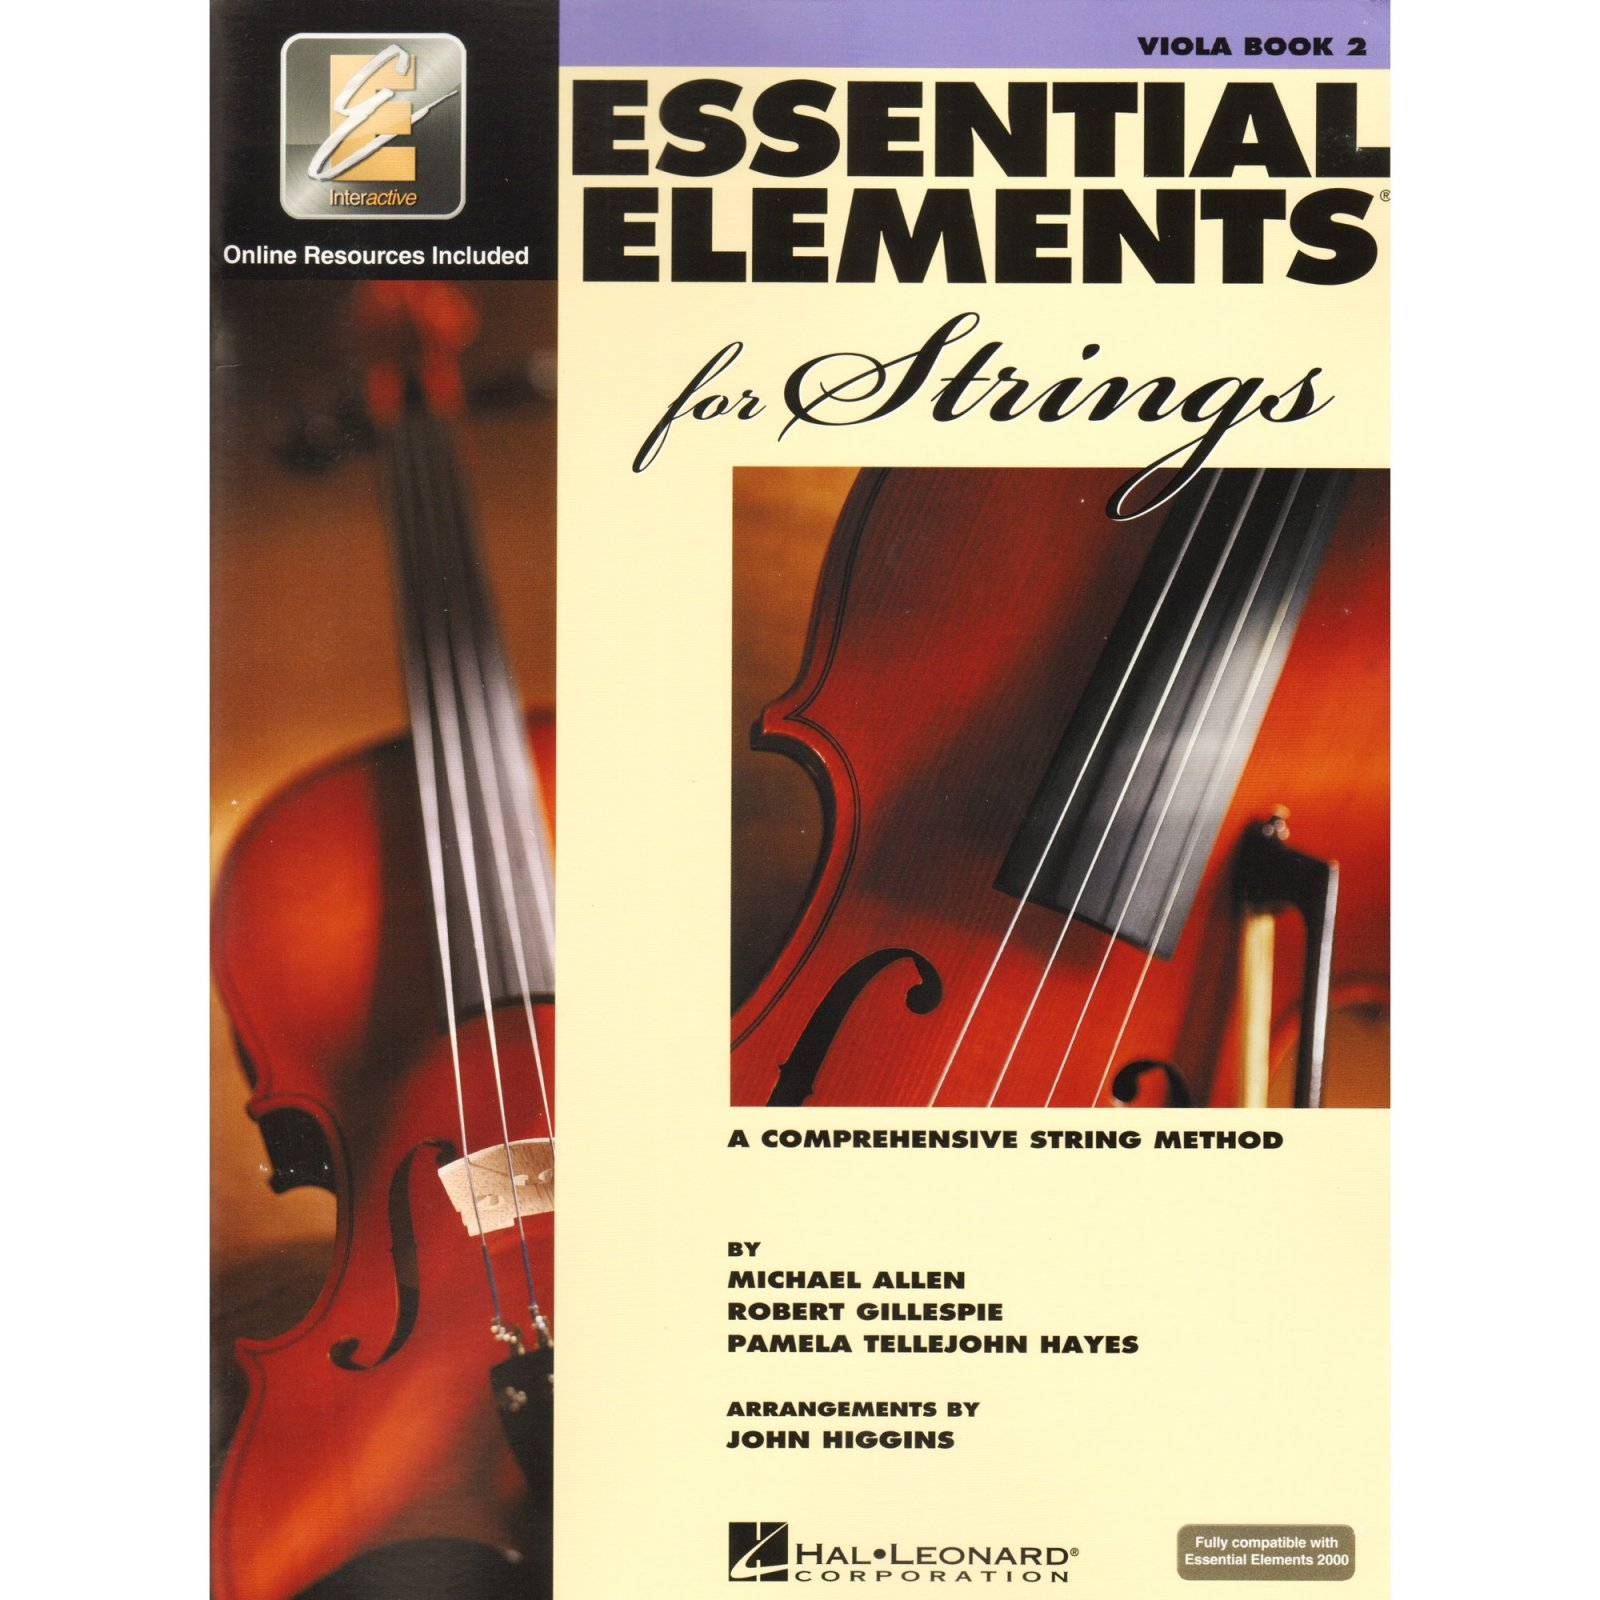 Essential Elements for Strings Viola Book Two A Comprehensive String Method- Online Resurces Included